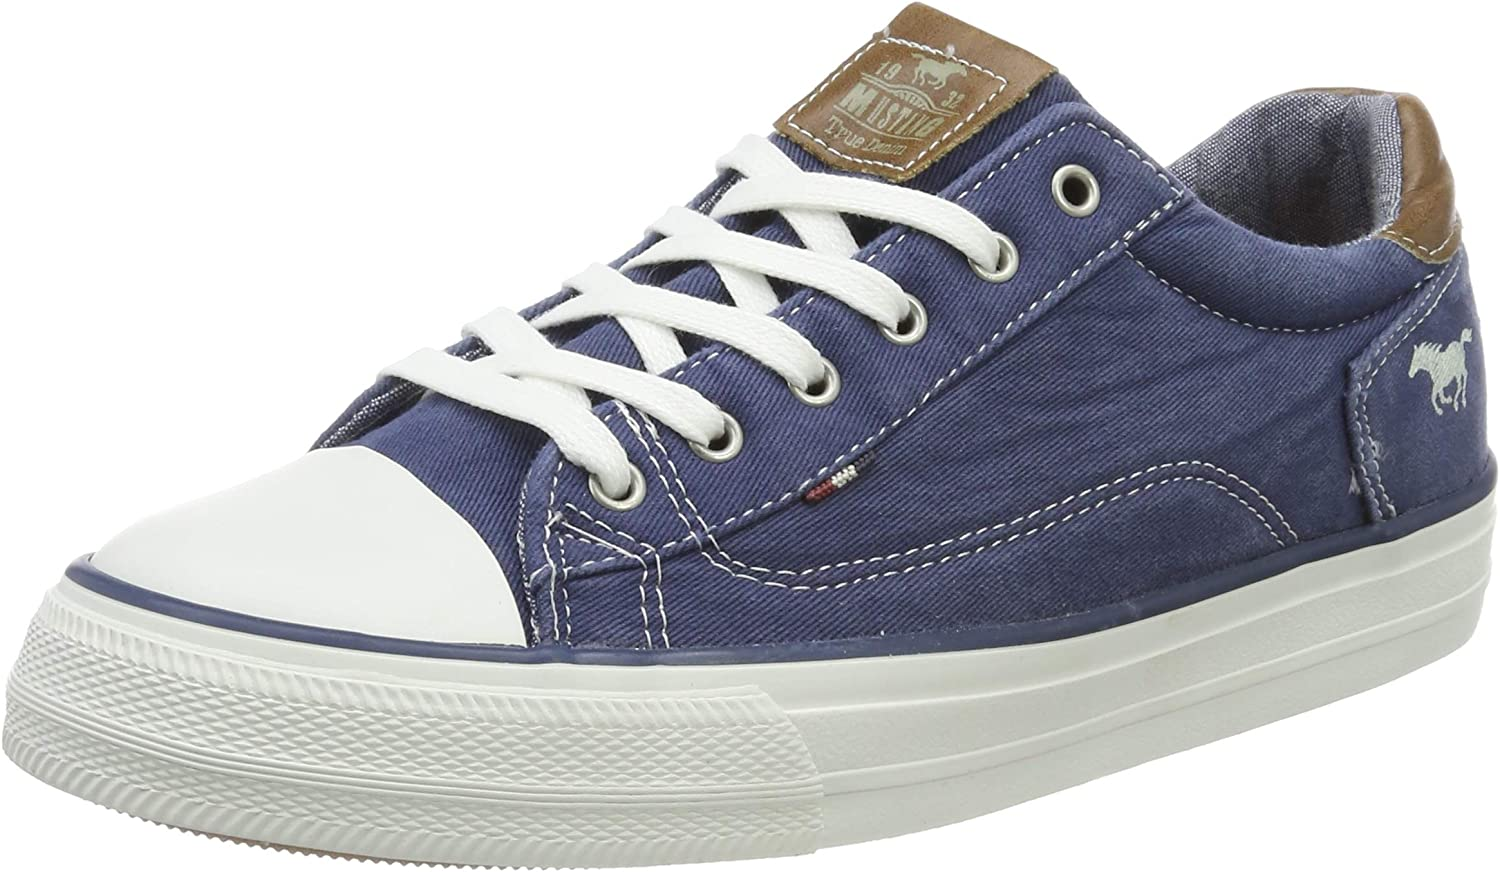 Portland Gifts Mall Mustang Men's Sneakers Low-Top